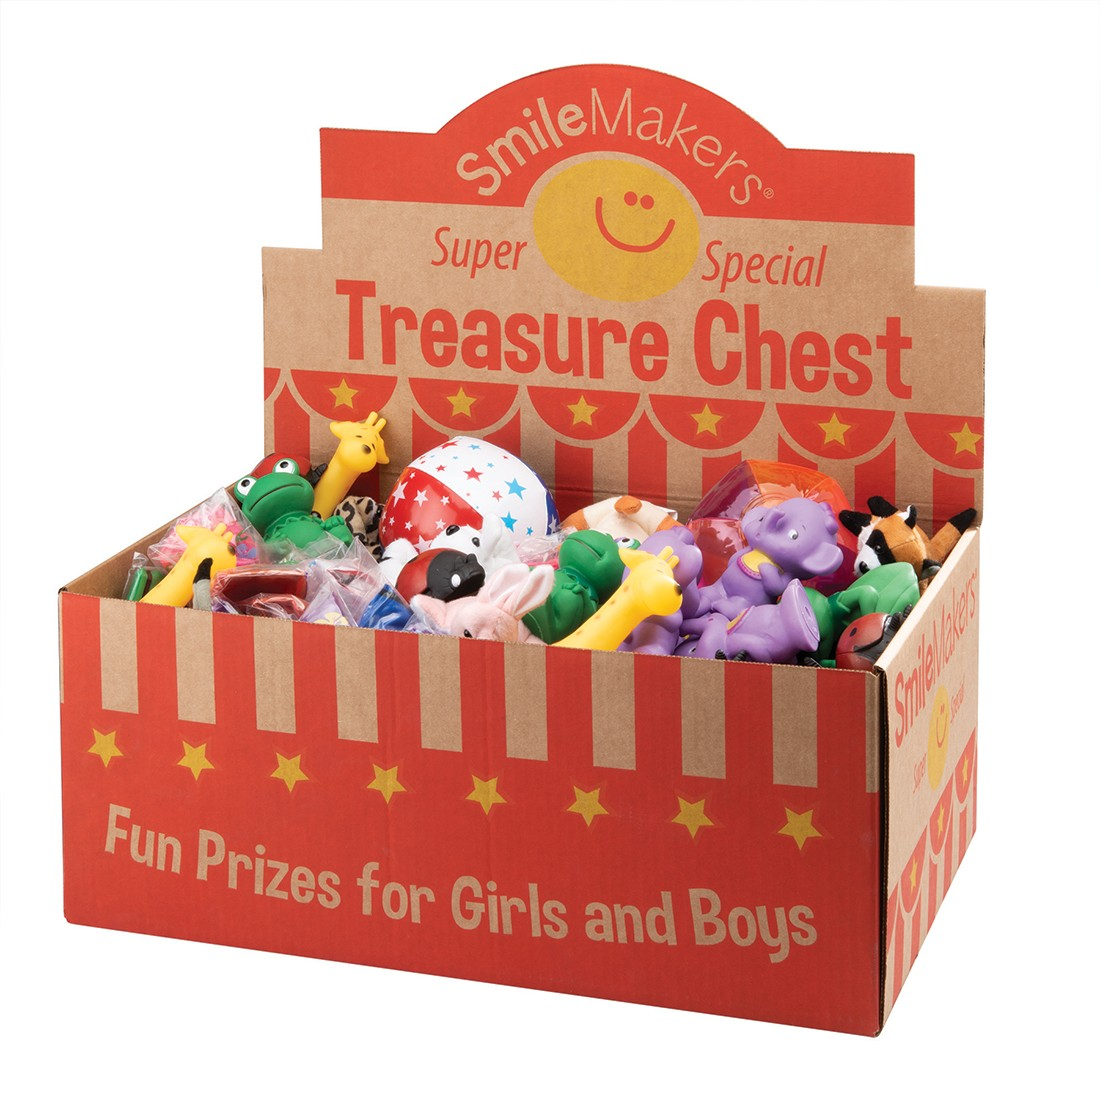 Tested for All Ages Treasure Chest [image]